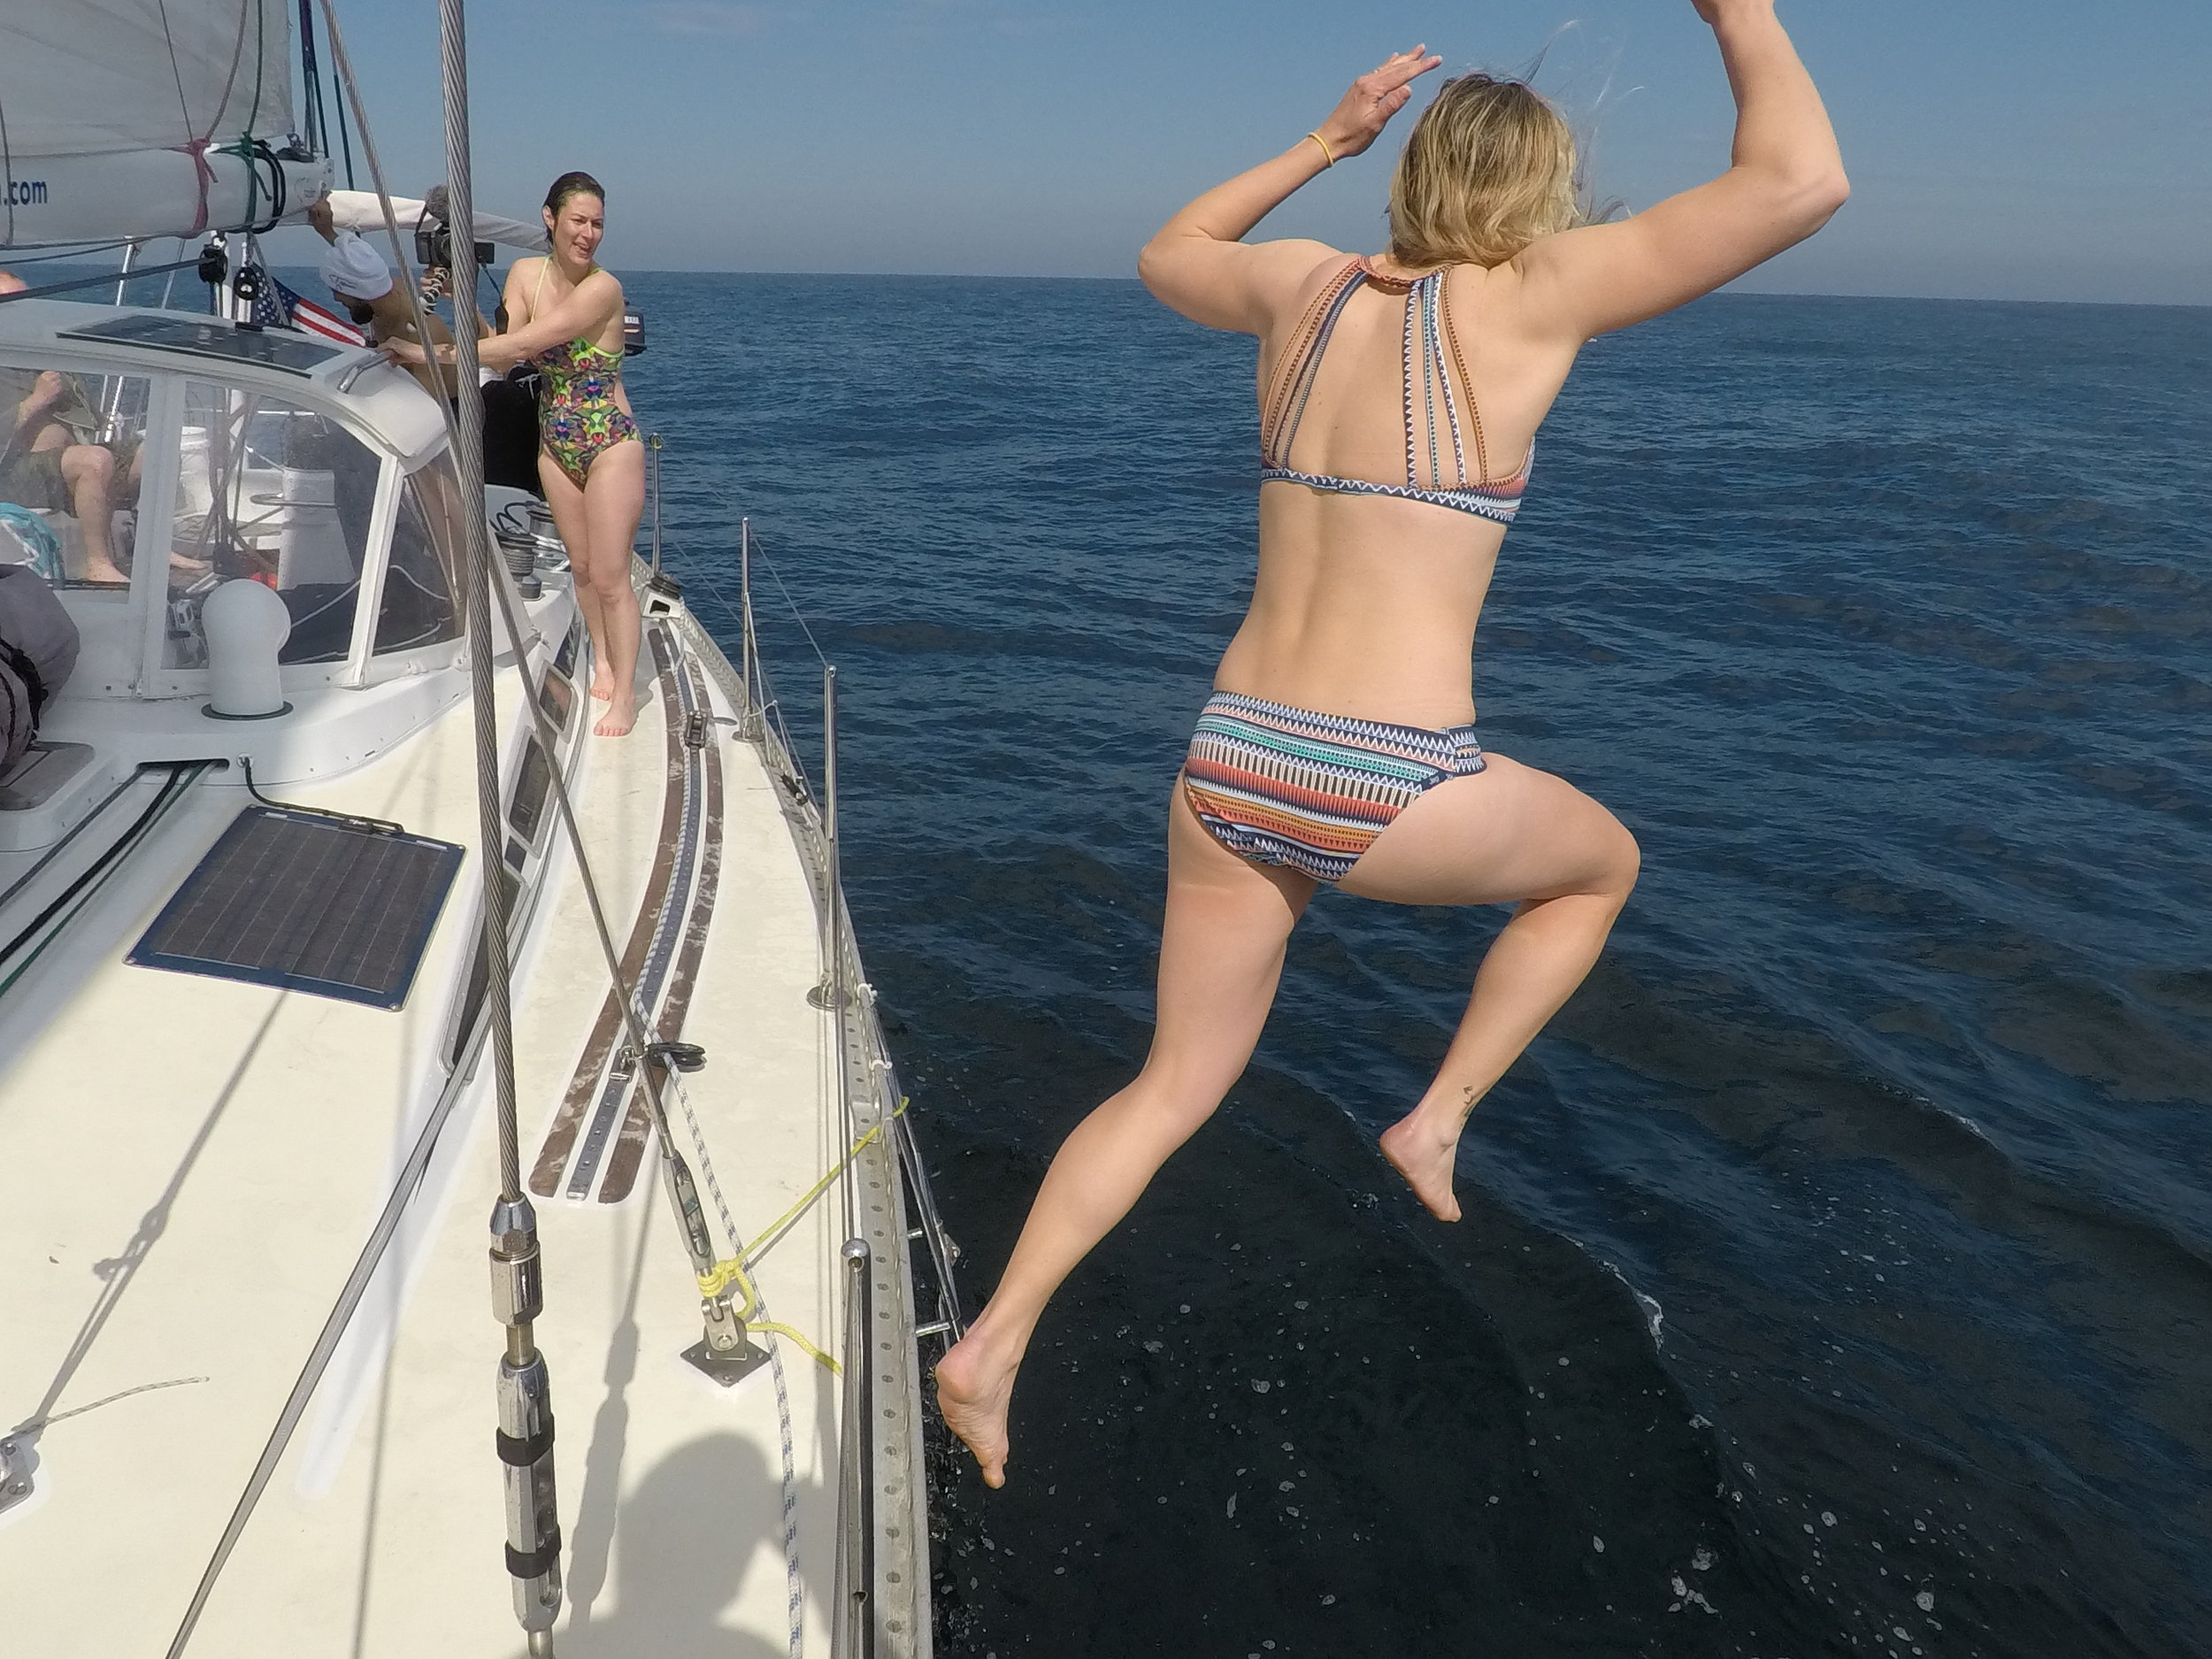 Mia takes the plunge into 48º/7º water in the North Sea!